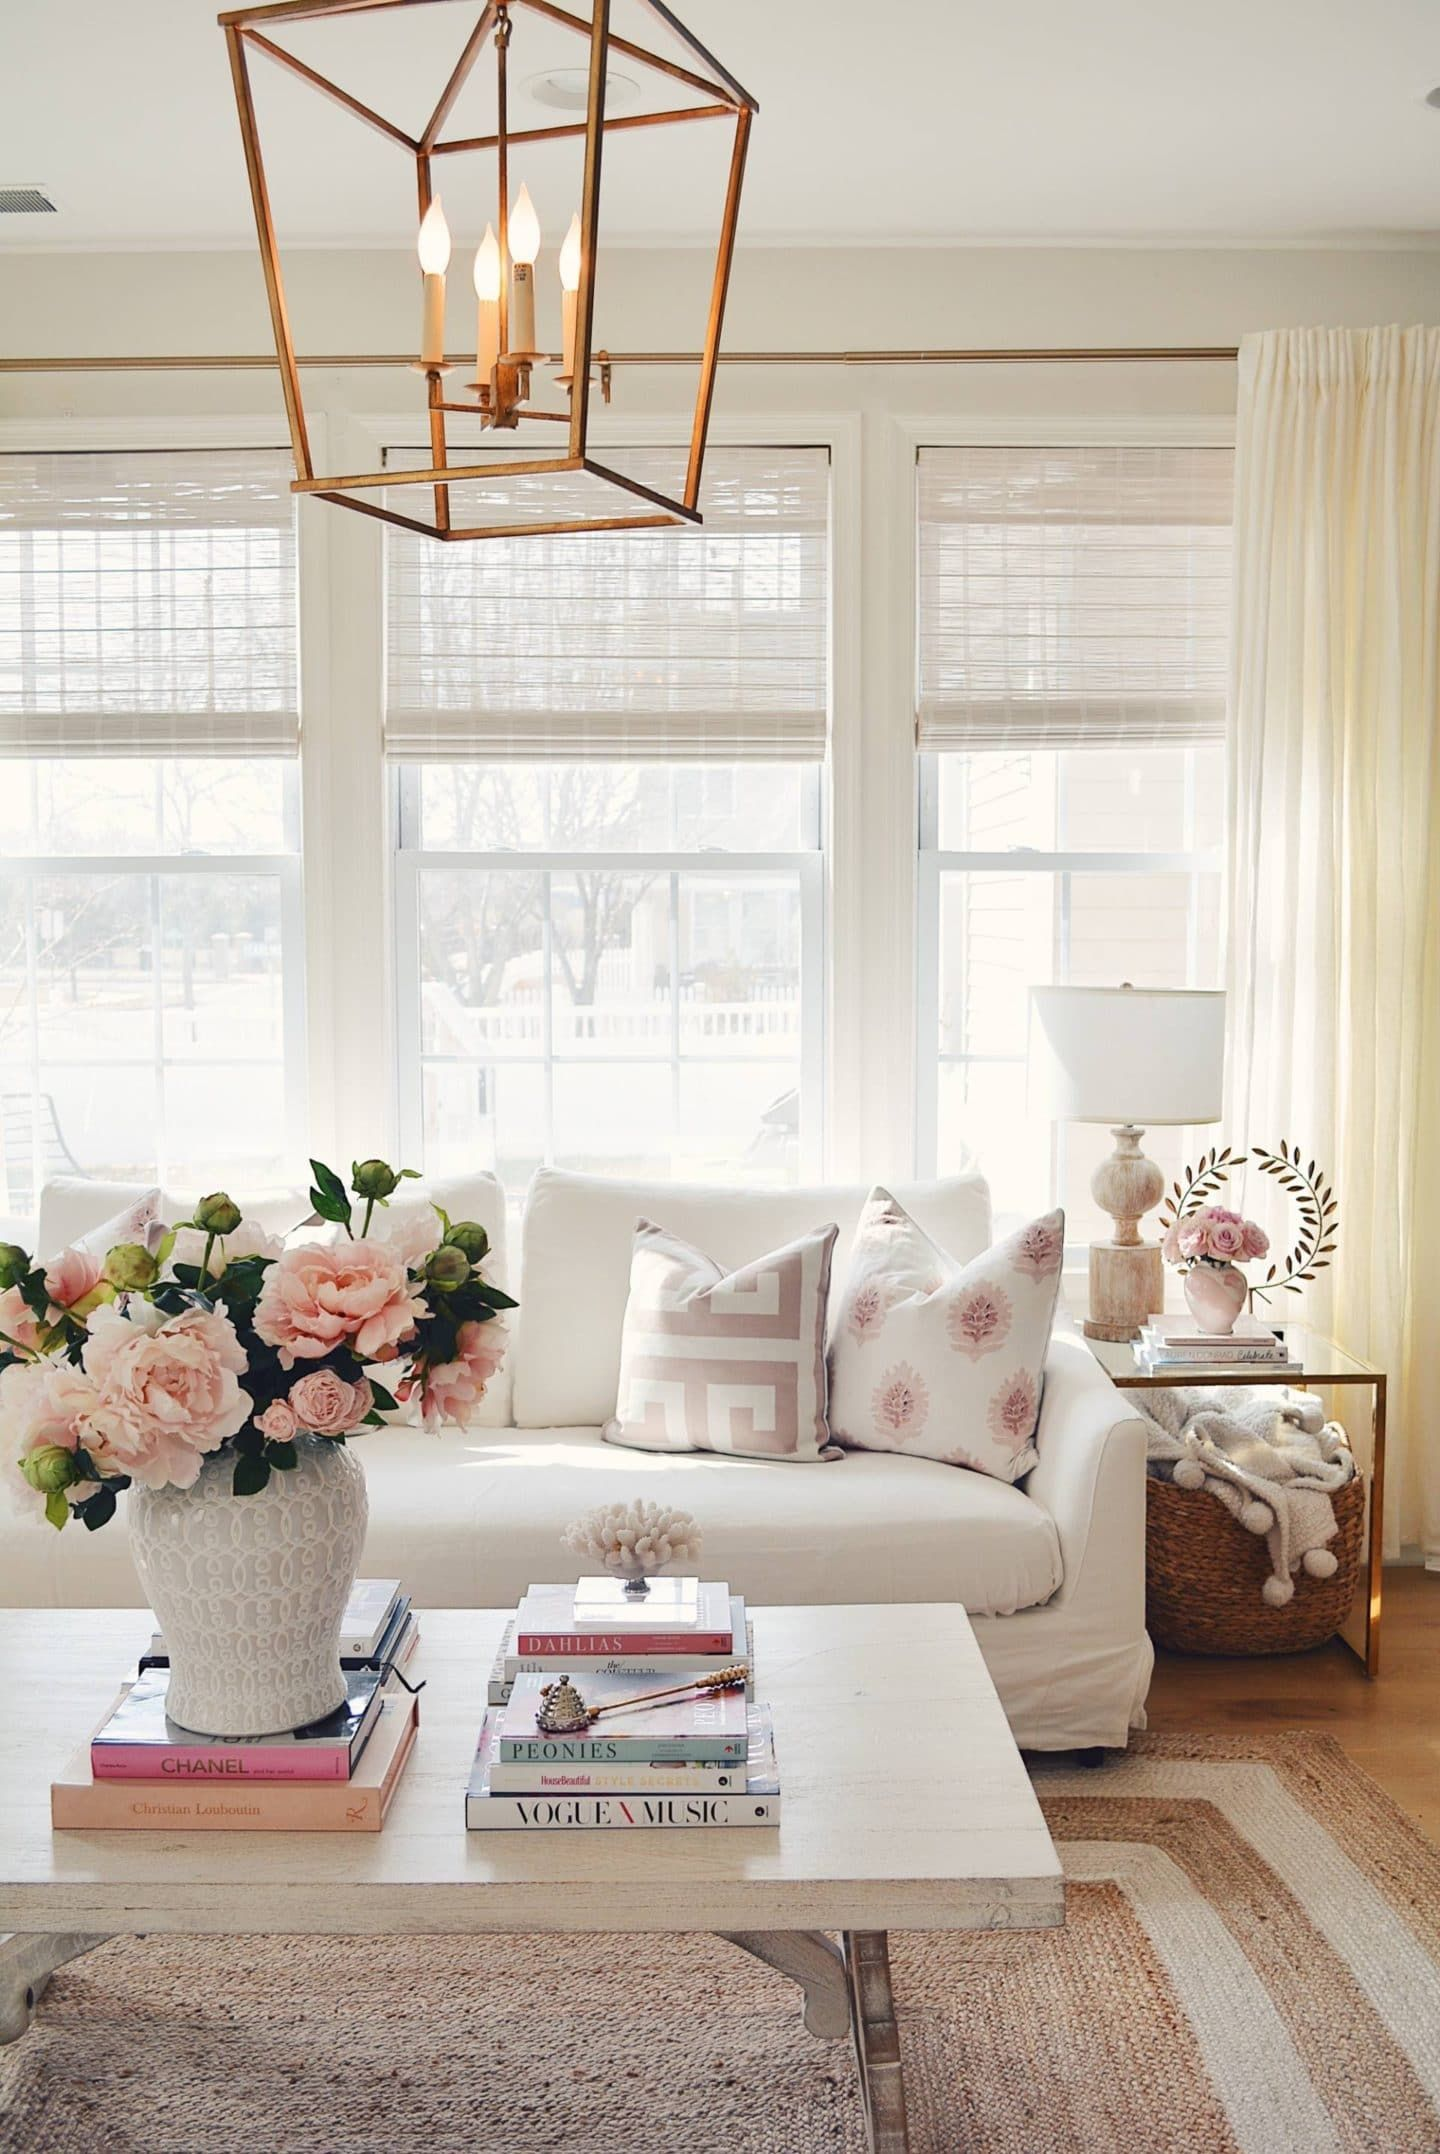 Affordable Window Treatments The Best Cheap Curtains Blinds For Your Home In 2020 Cheap Curtains Curtains With Blinds Living Room Decor Inspiration